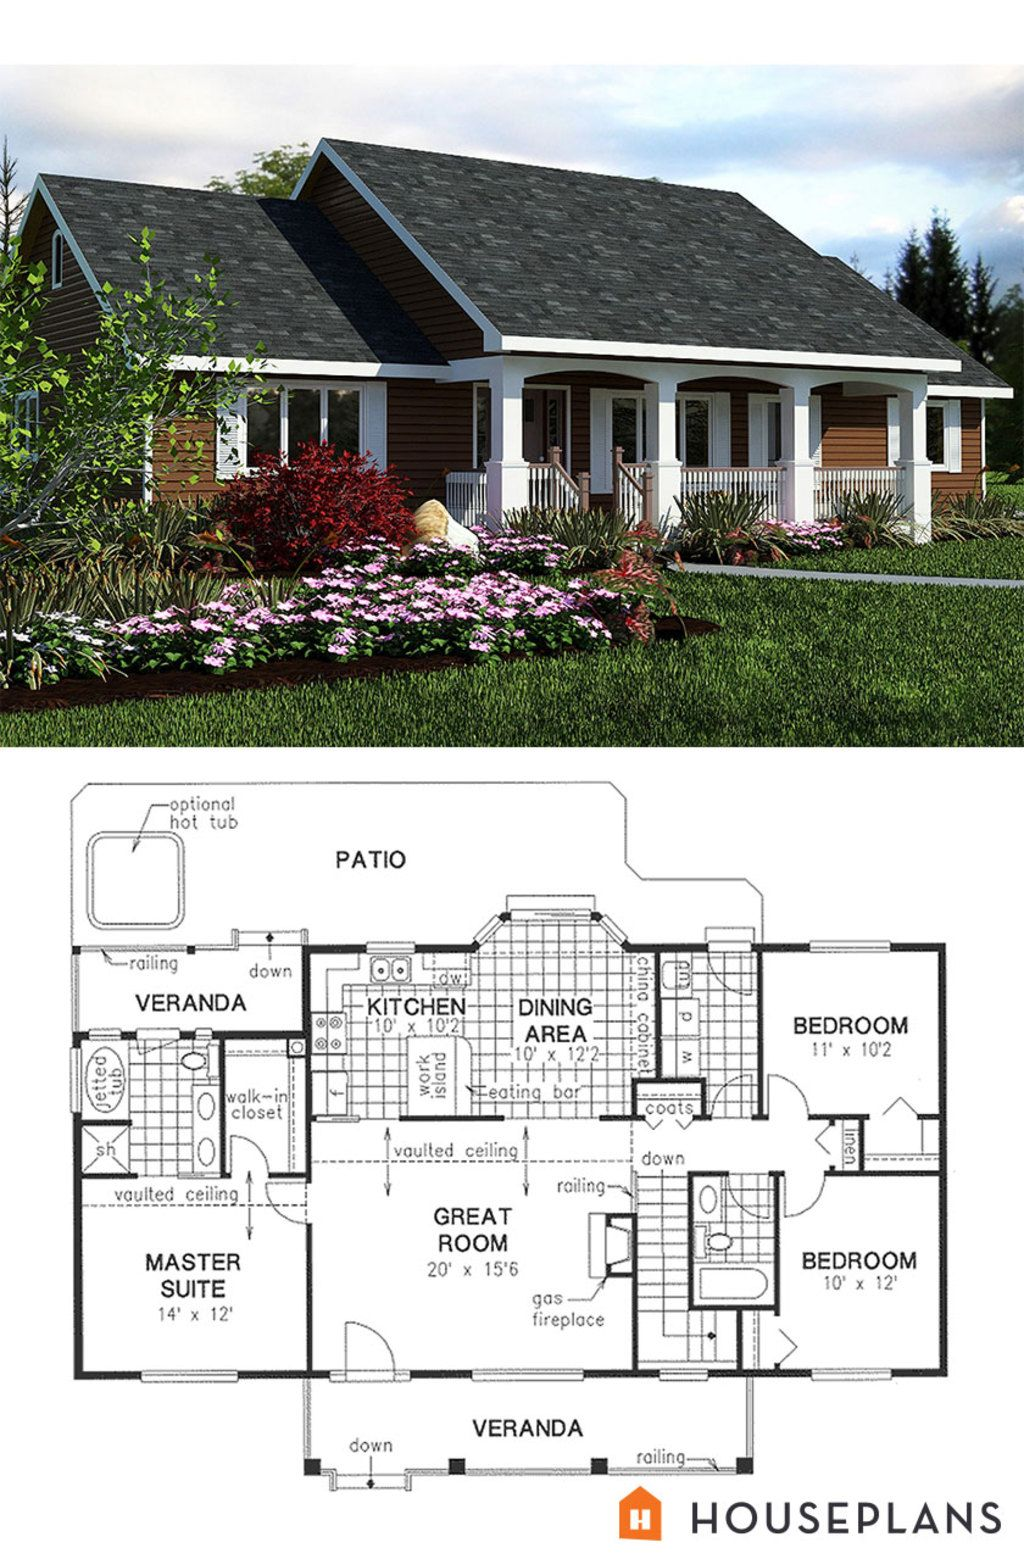 Country Style House Plan 3 Beds 2 Baths 1412 Sq Ft Plan 18 1036 Country House Plans Country House Plan Country Style House Plans